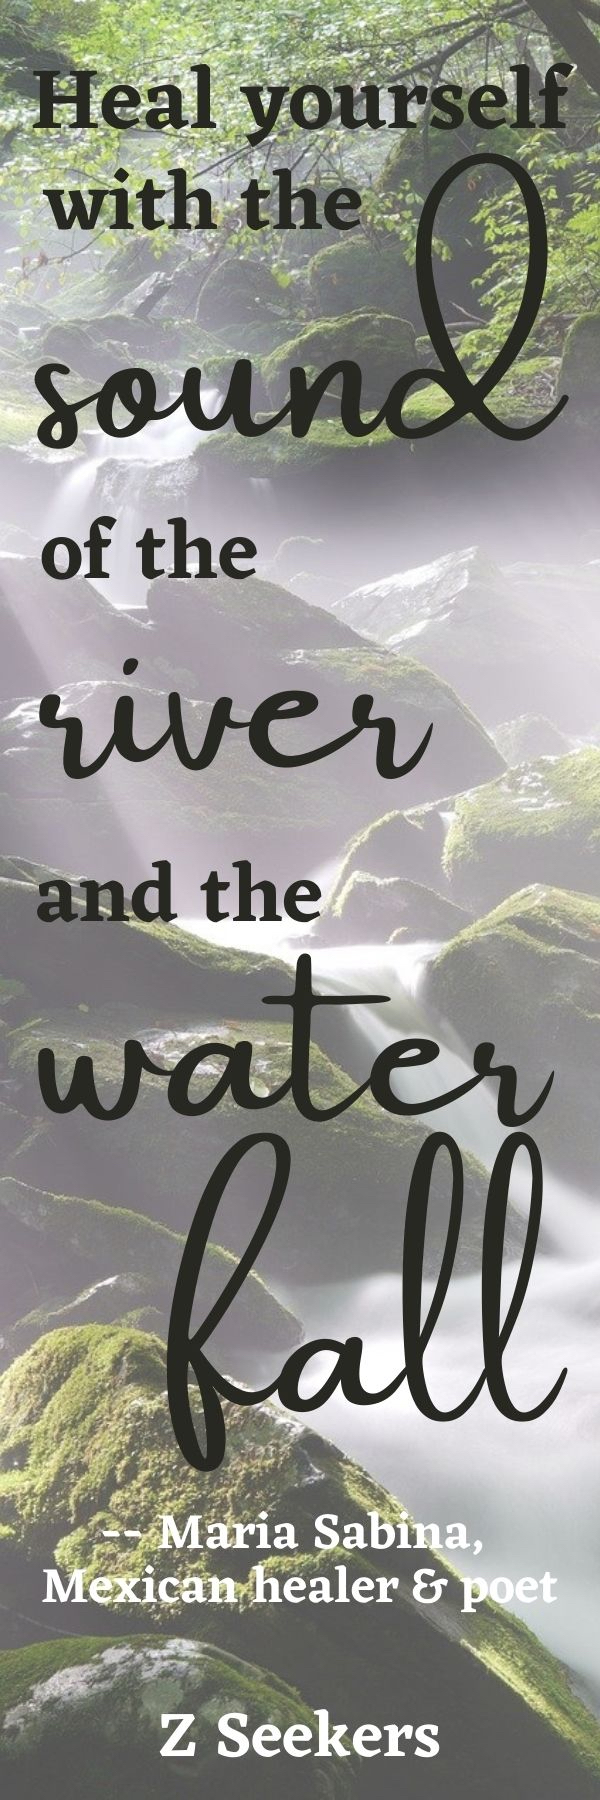 Maria Sabina, Mexican healer and Poet - heal yourself river waterfall